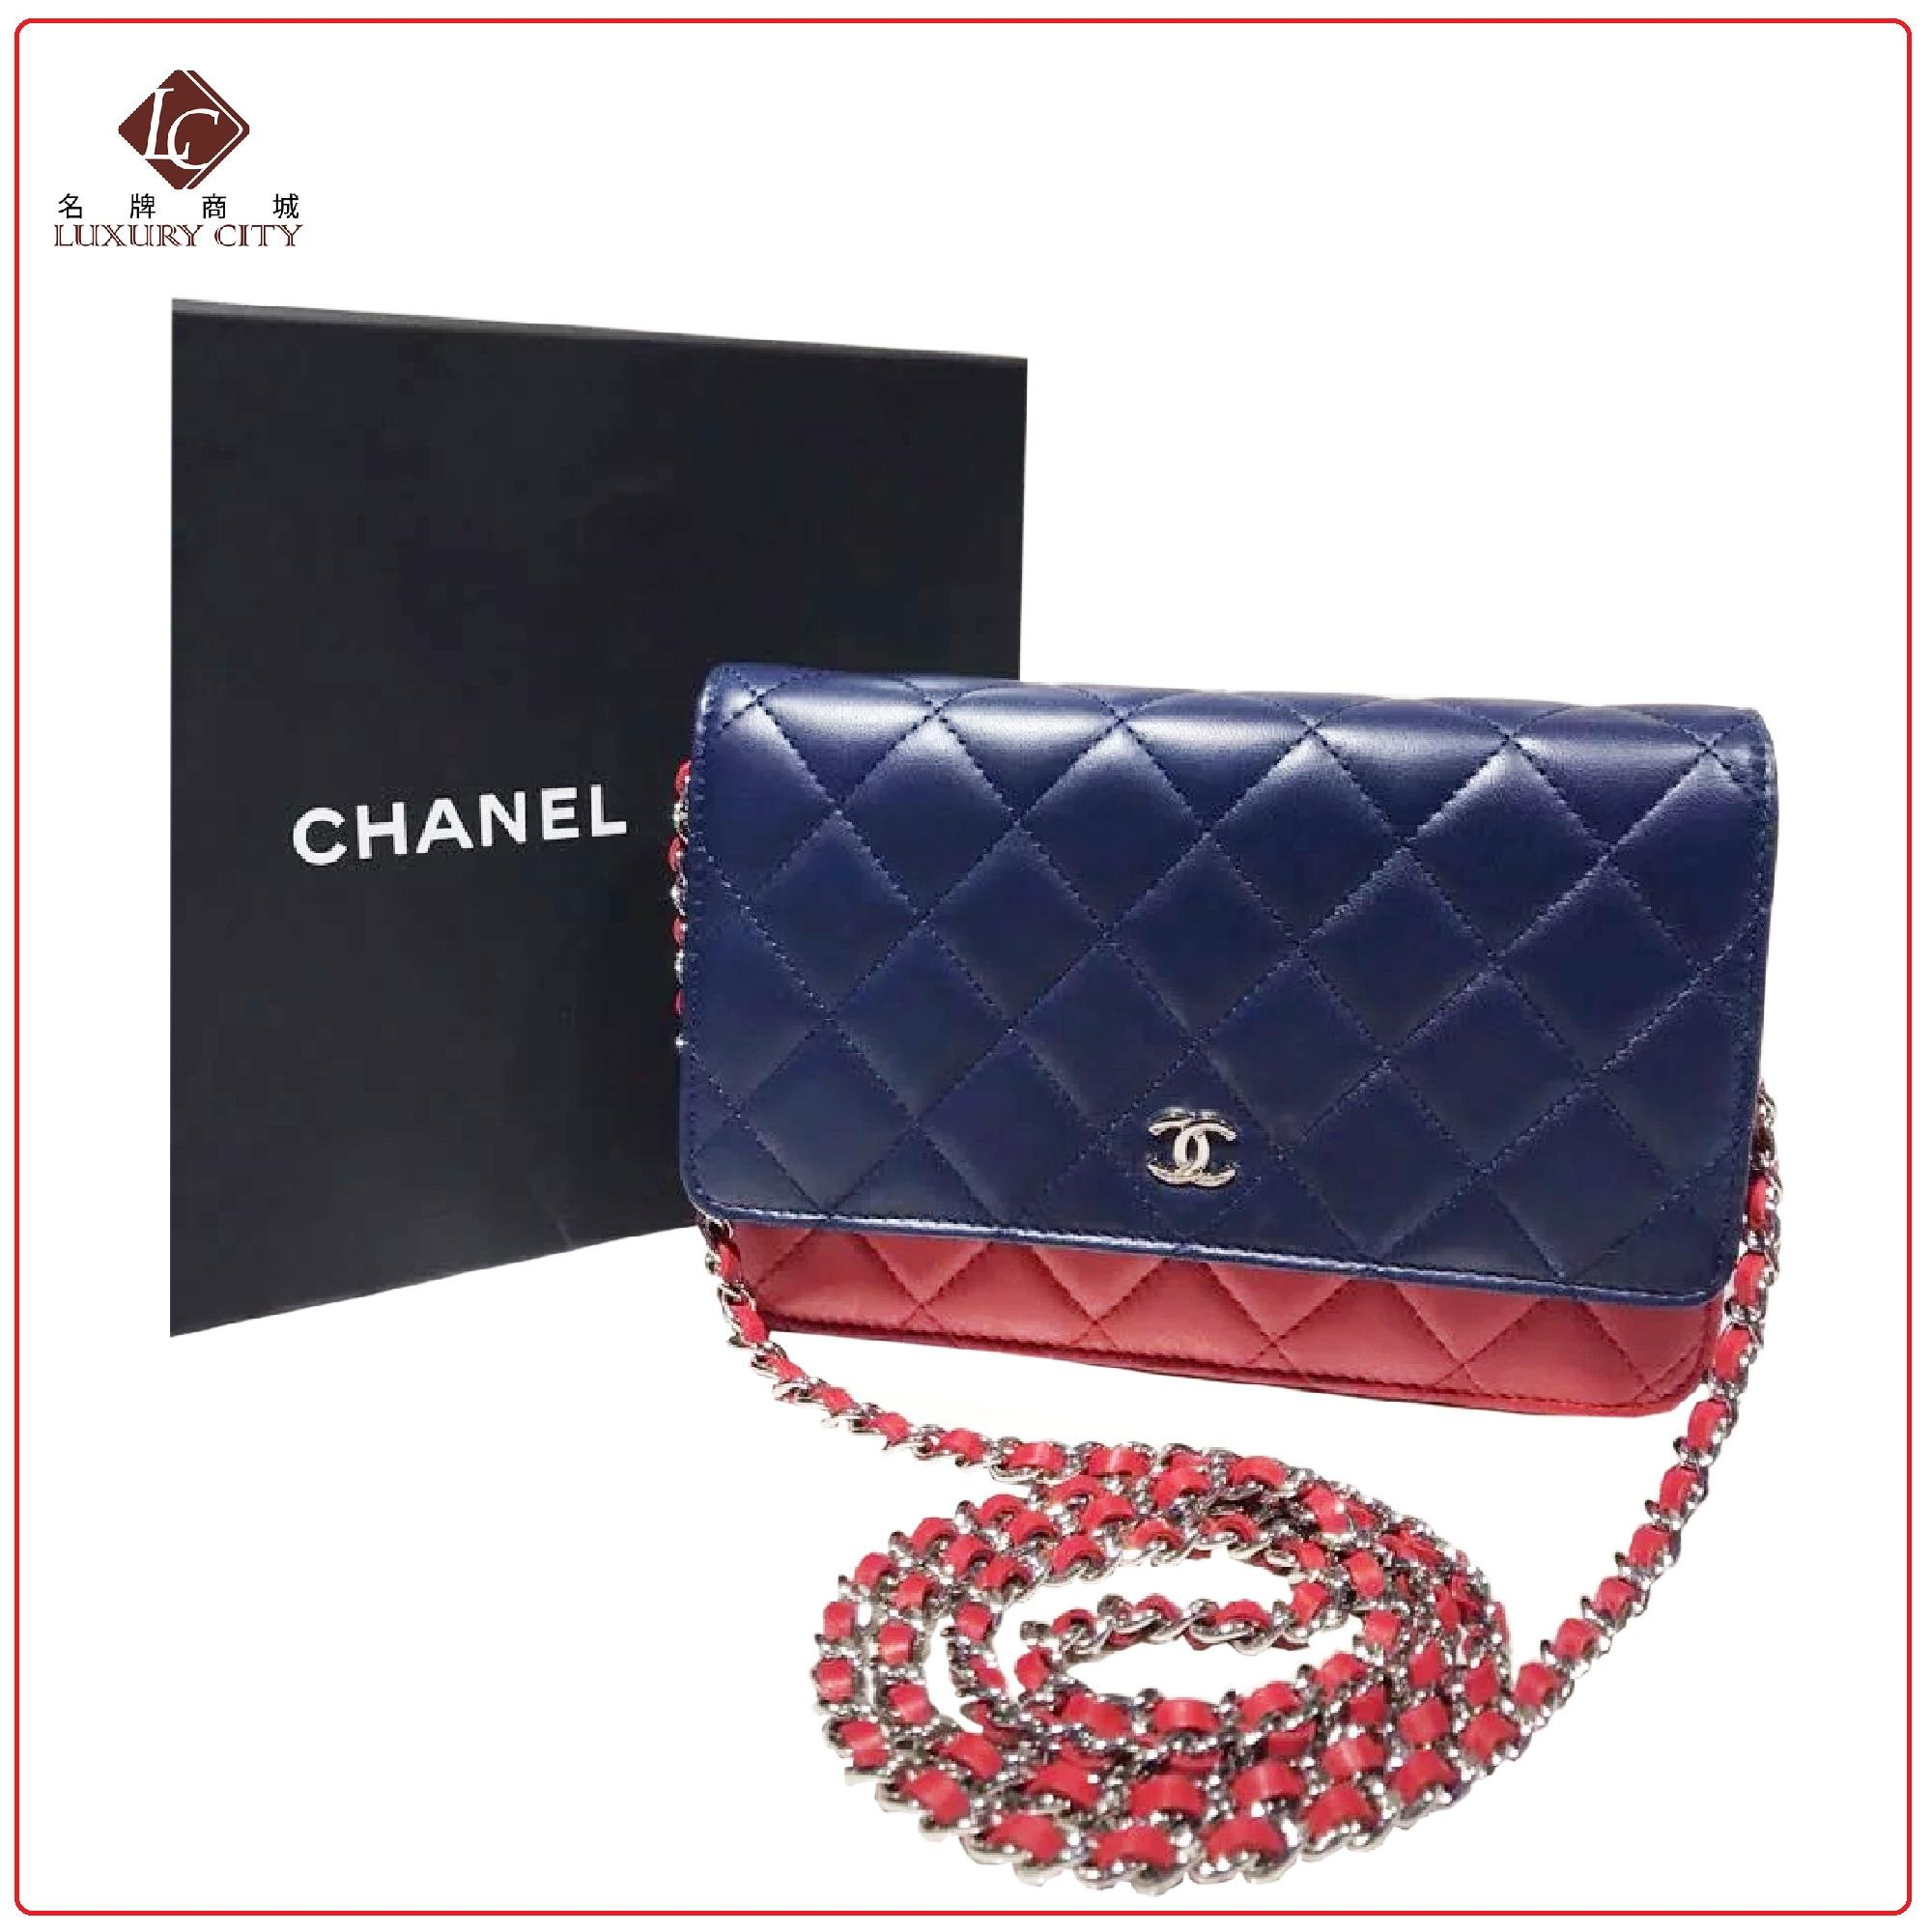 5eb6e9804121 PRELOVED AUTHENTIC CHANEL CLASSIC CC WALLET ON CHAIN A33814 (UNUSED)